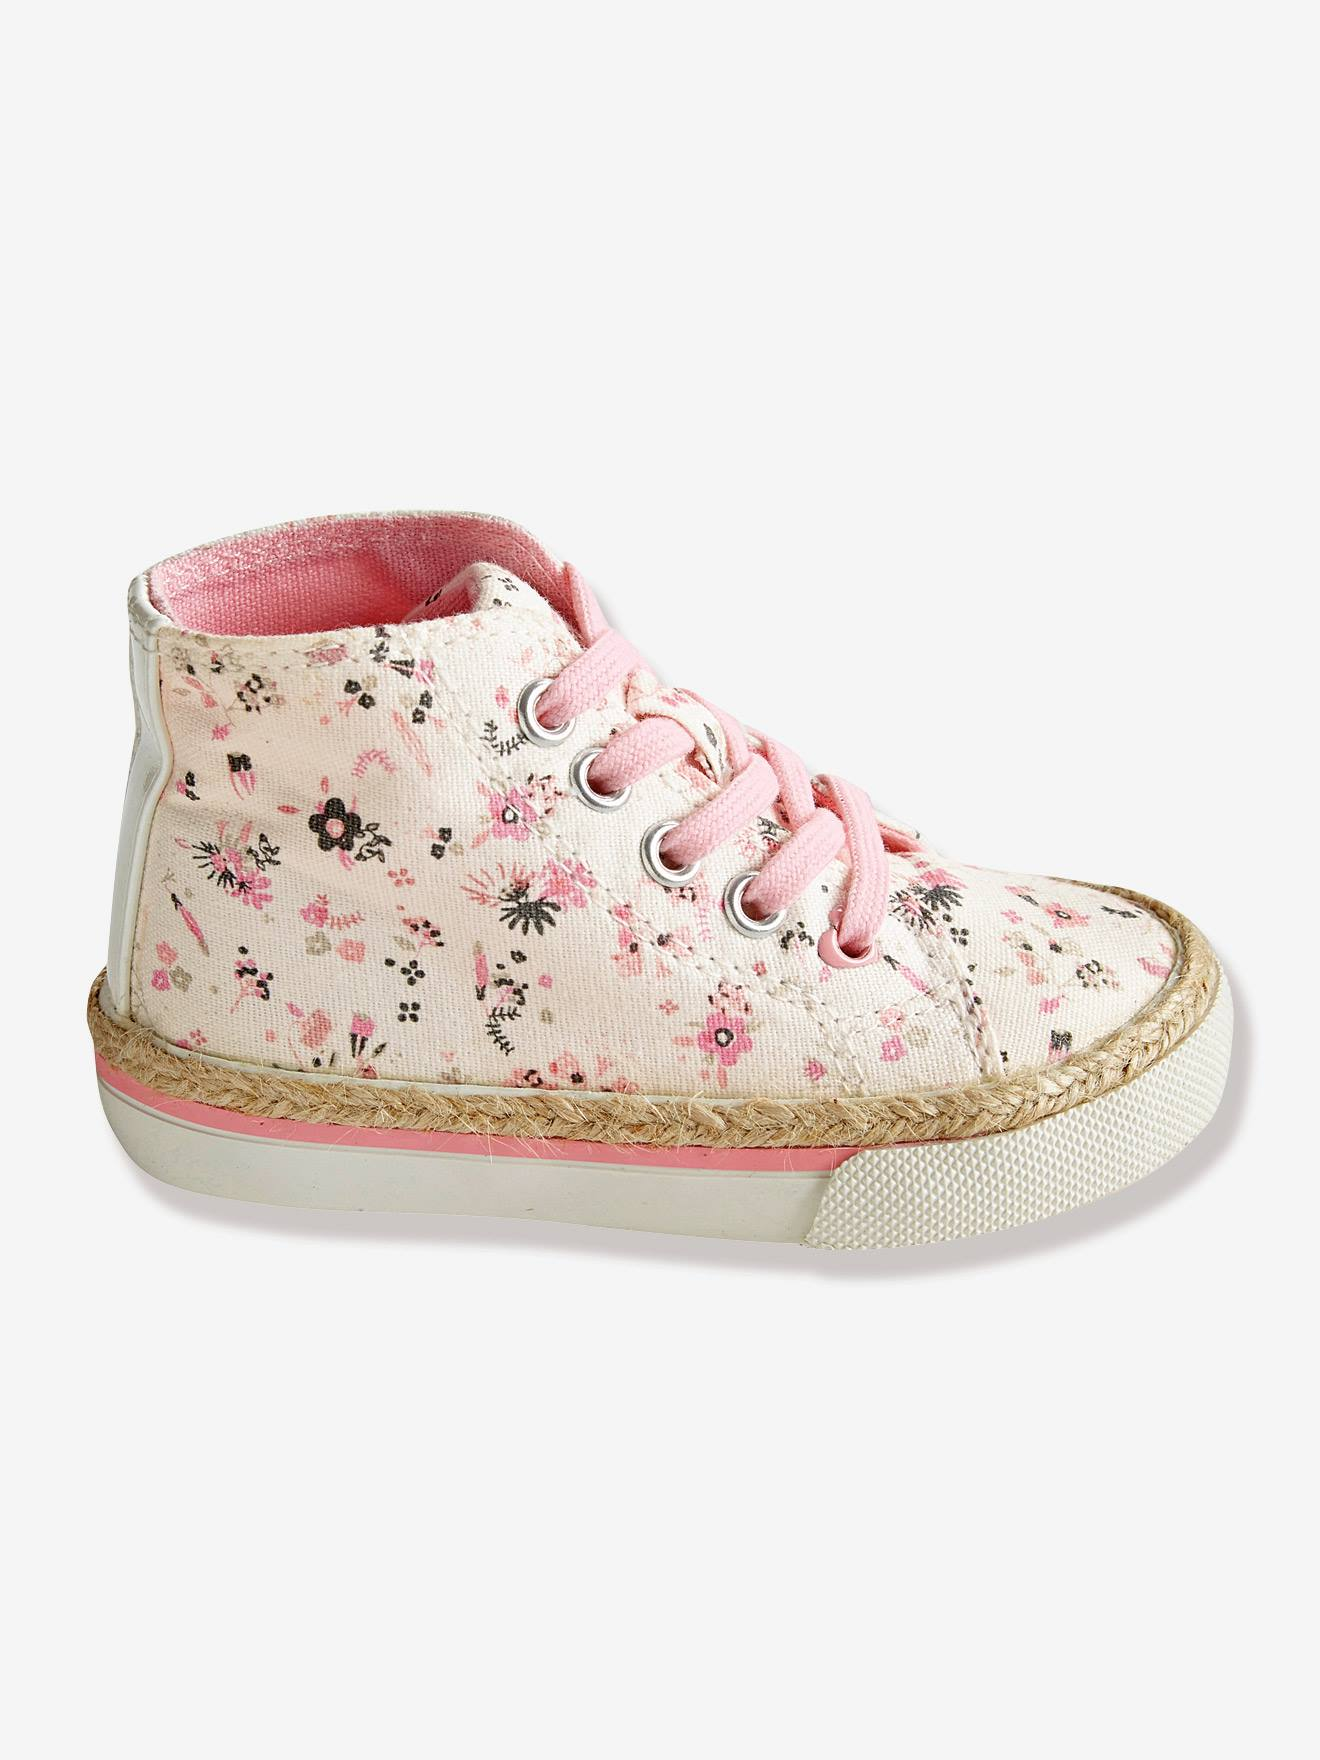 chaussure bebe fille pointure 18,Chaussures Chaussures b茅b